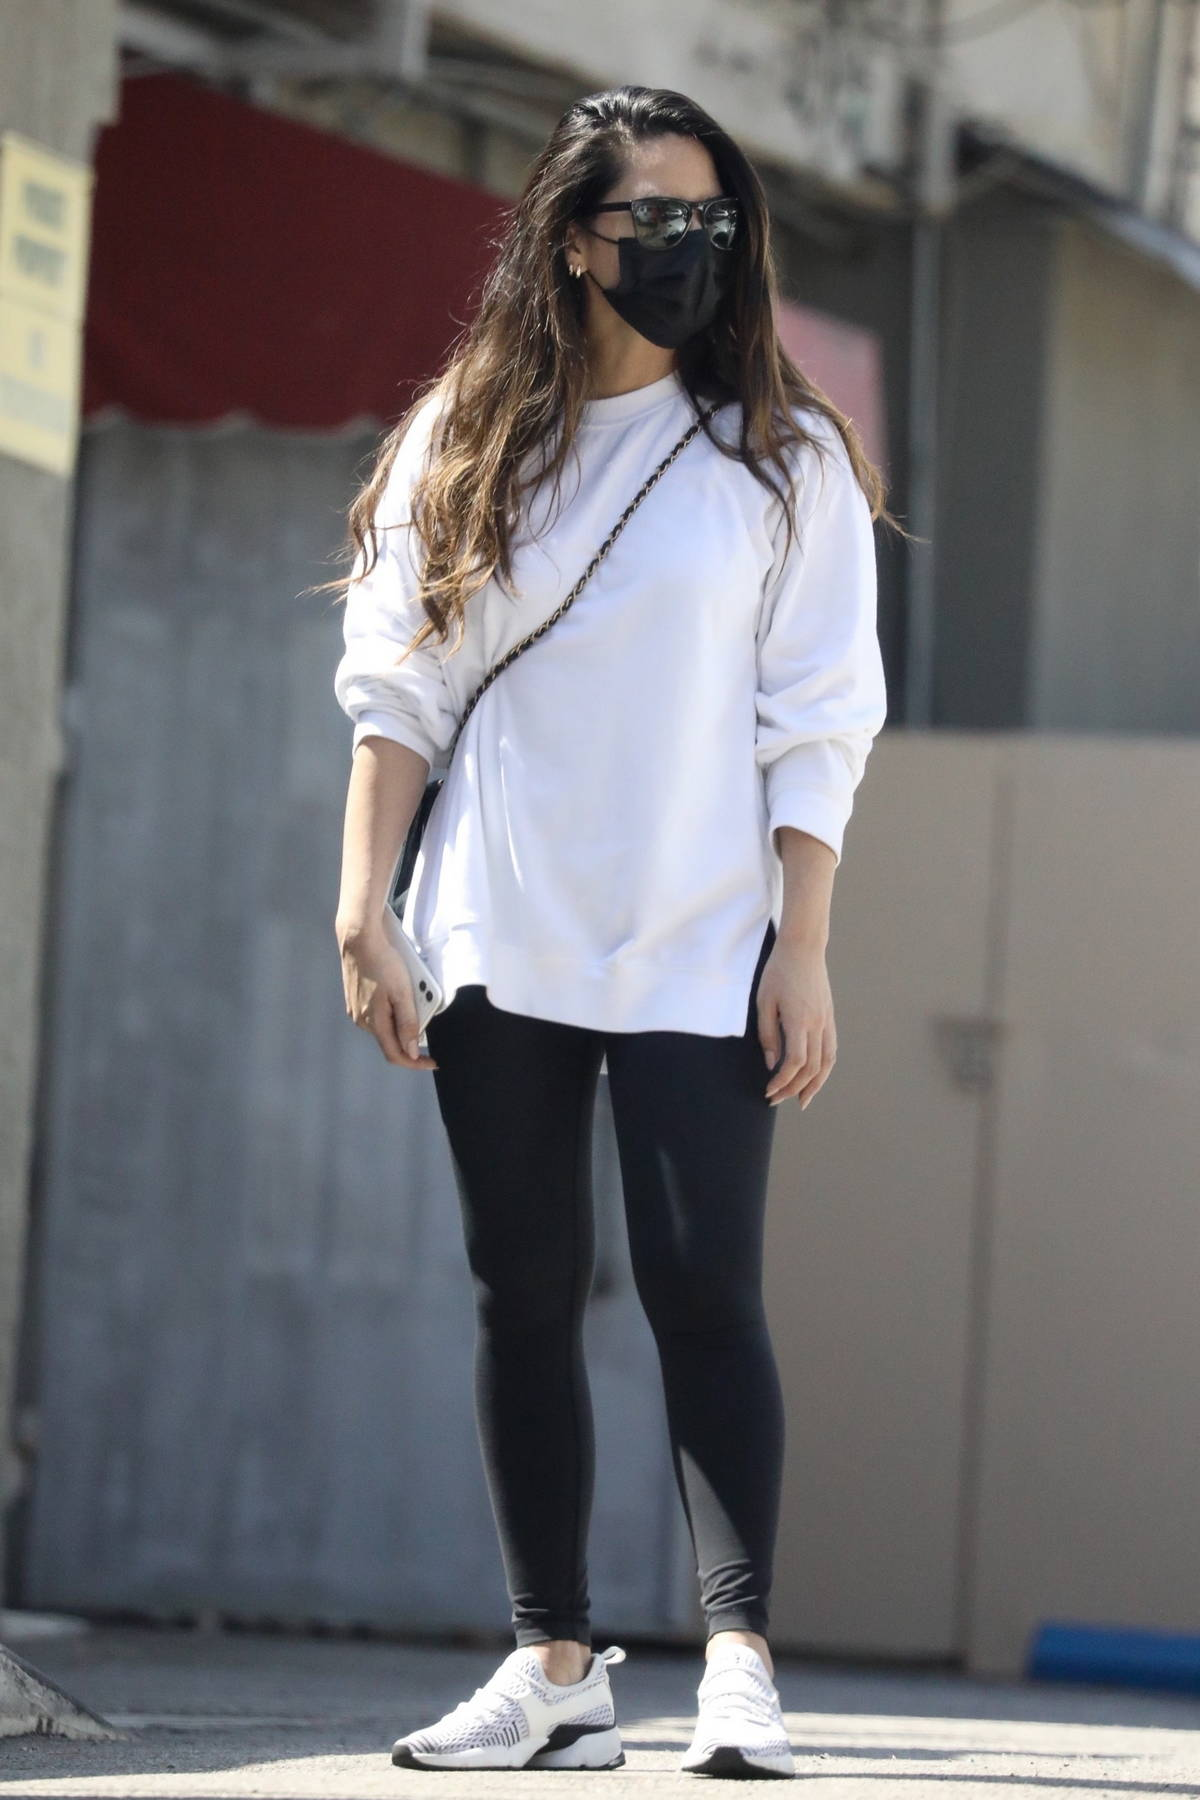 Olivia Munn seen leaving a workout session wearing a white sweatshirt and black leggings in West Hollywood, California